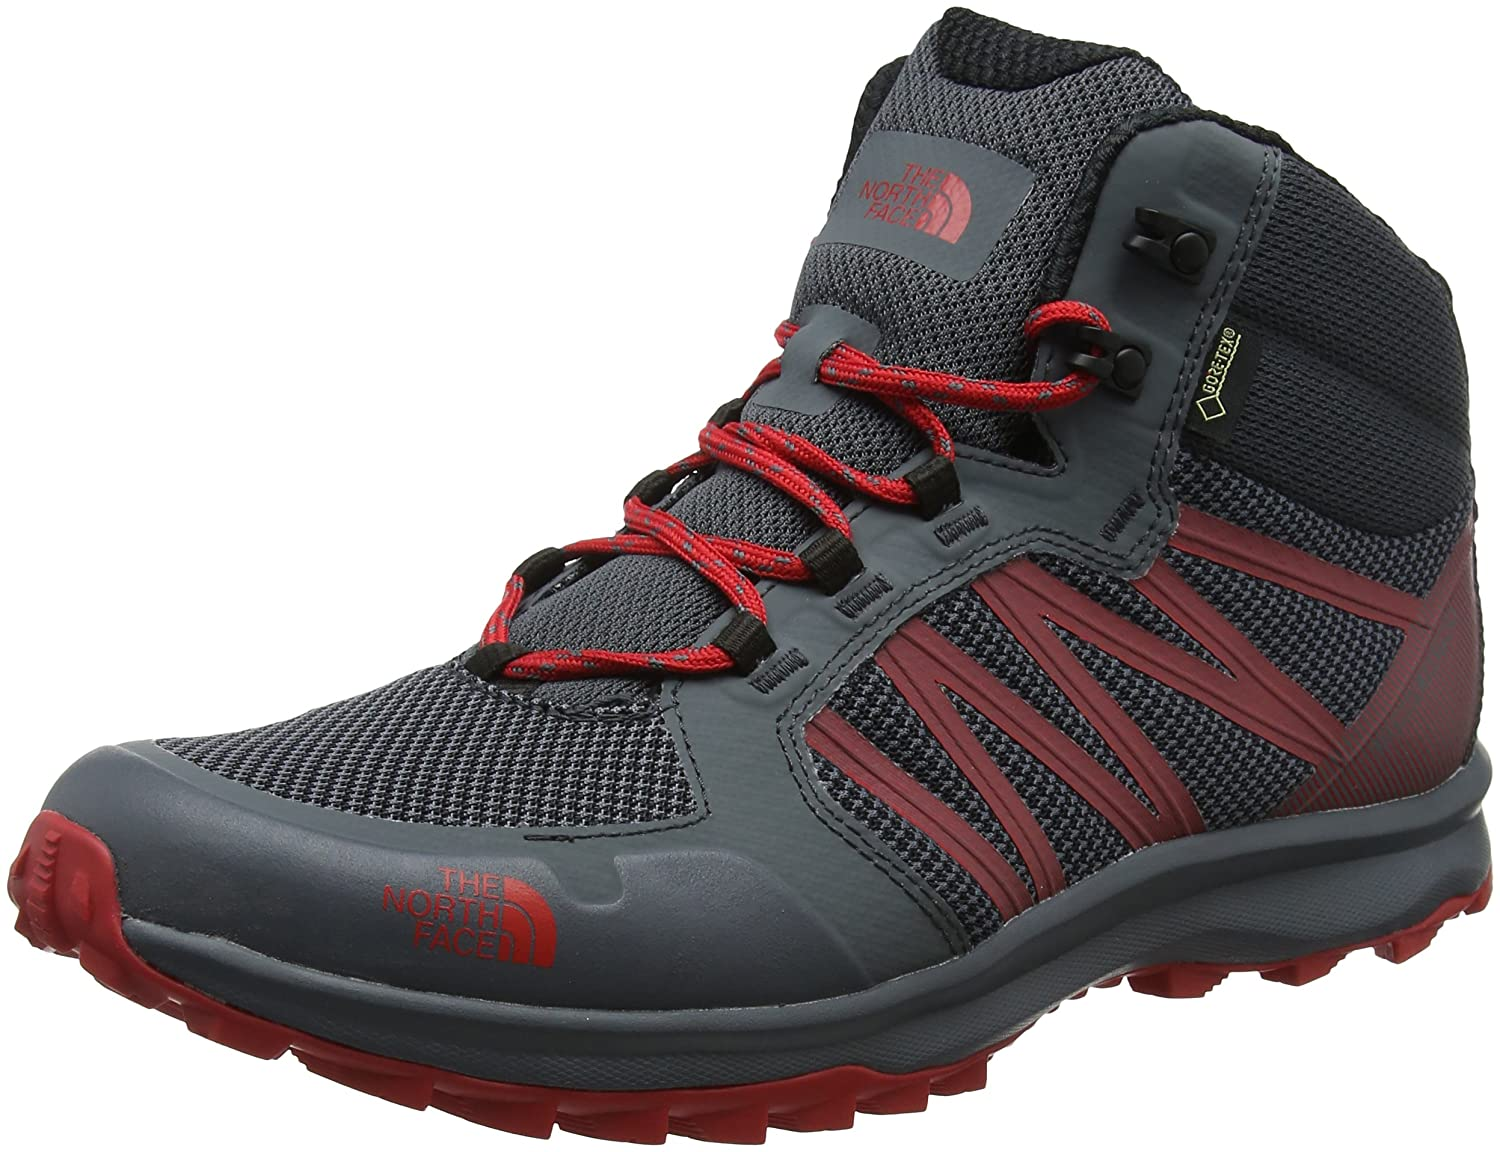 THE NORTH FACE Herren M Litewave FP Md GTX Trekking-& Wanderstiefel